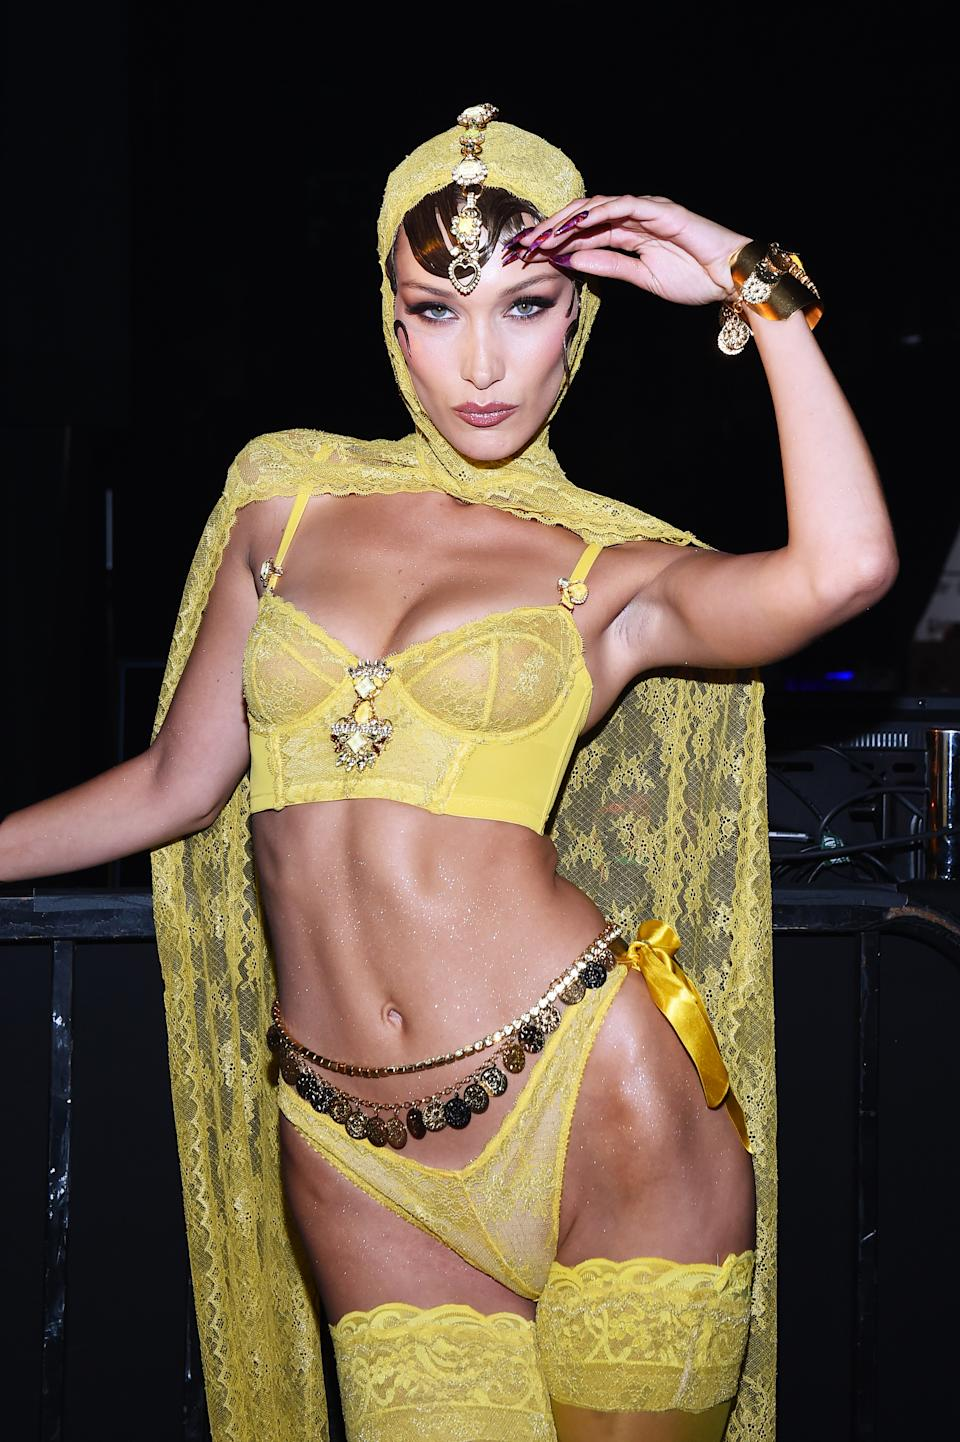 BROOKLYN, NEW YORK - SEPTEMBER 10: Bella Hadid prepares backstage for Savage X Fenty Show Presented By Amazon Prime Video - Backstage at Barclays Center on September 10, 2019 in Brooklyn, New York. (Photo by Ilya S. Savenok/Getty Images for Savage X Fenty Show Presented by Amazon Prime Video )